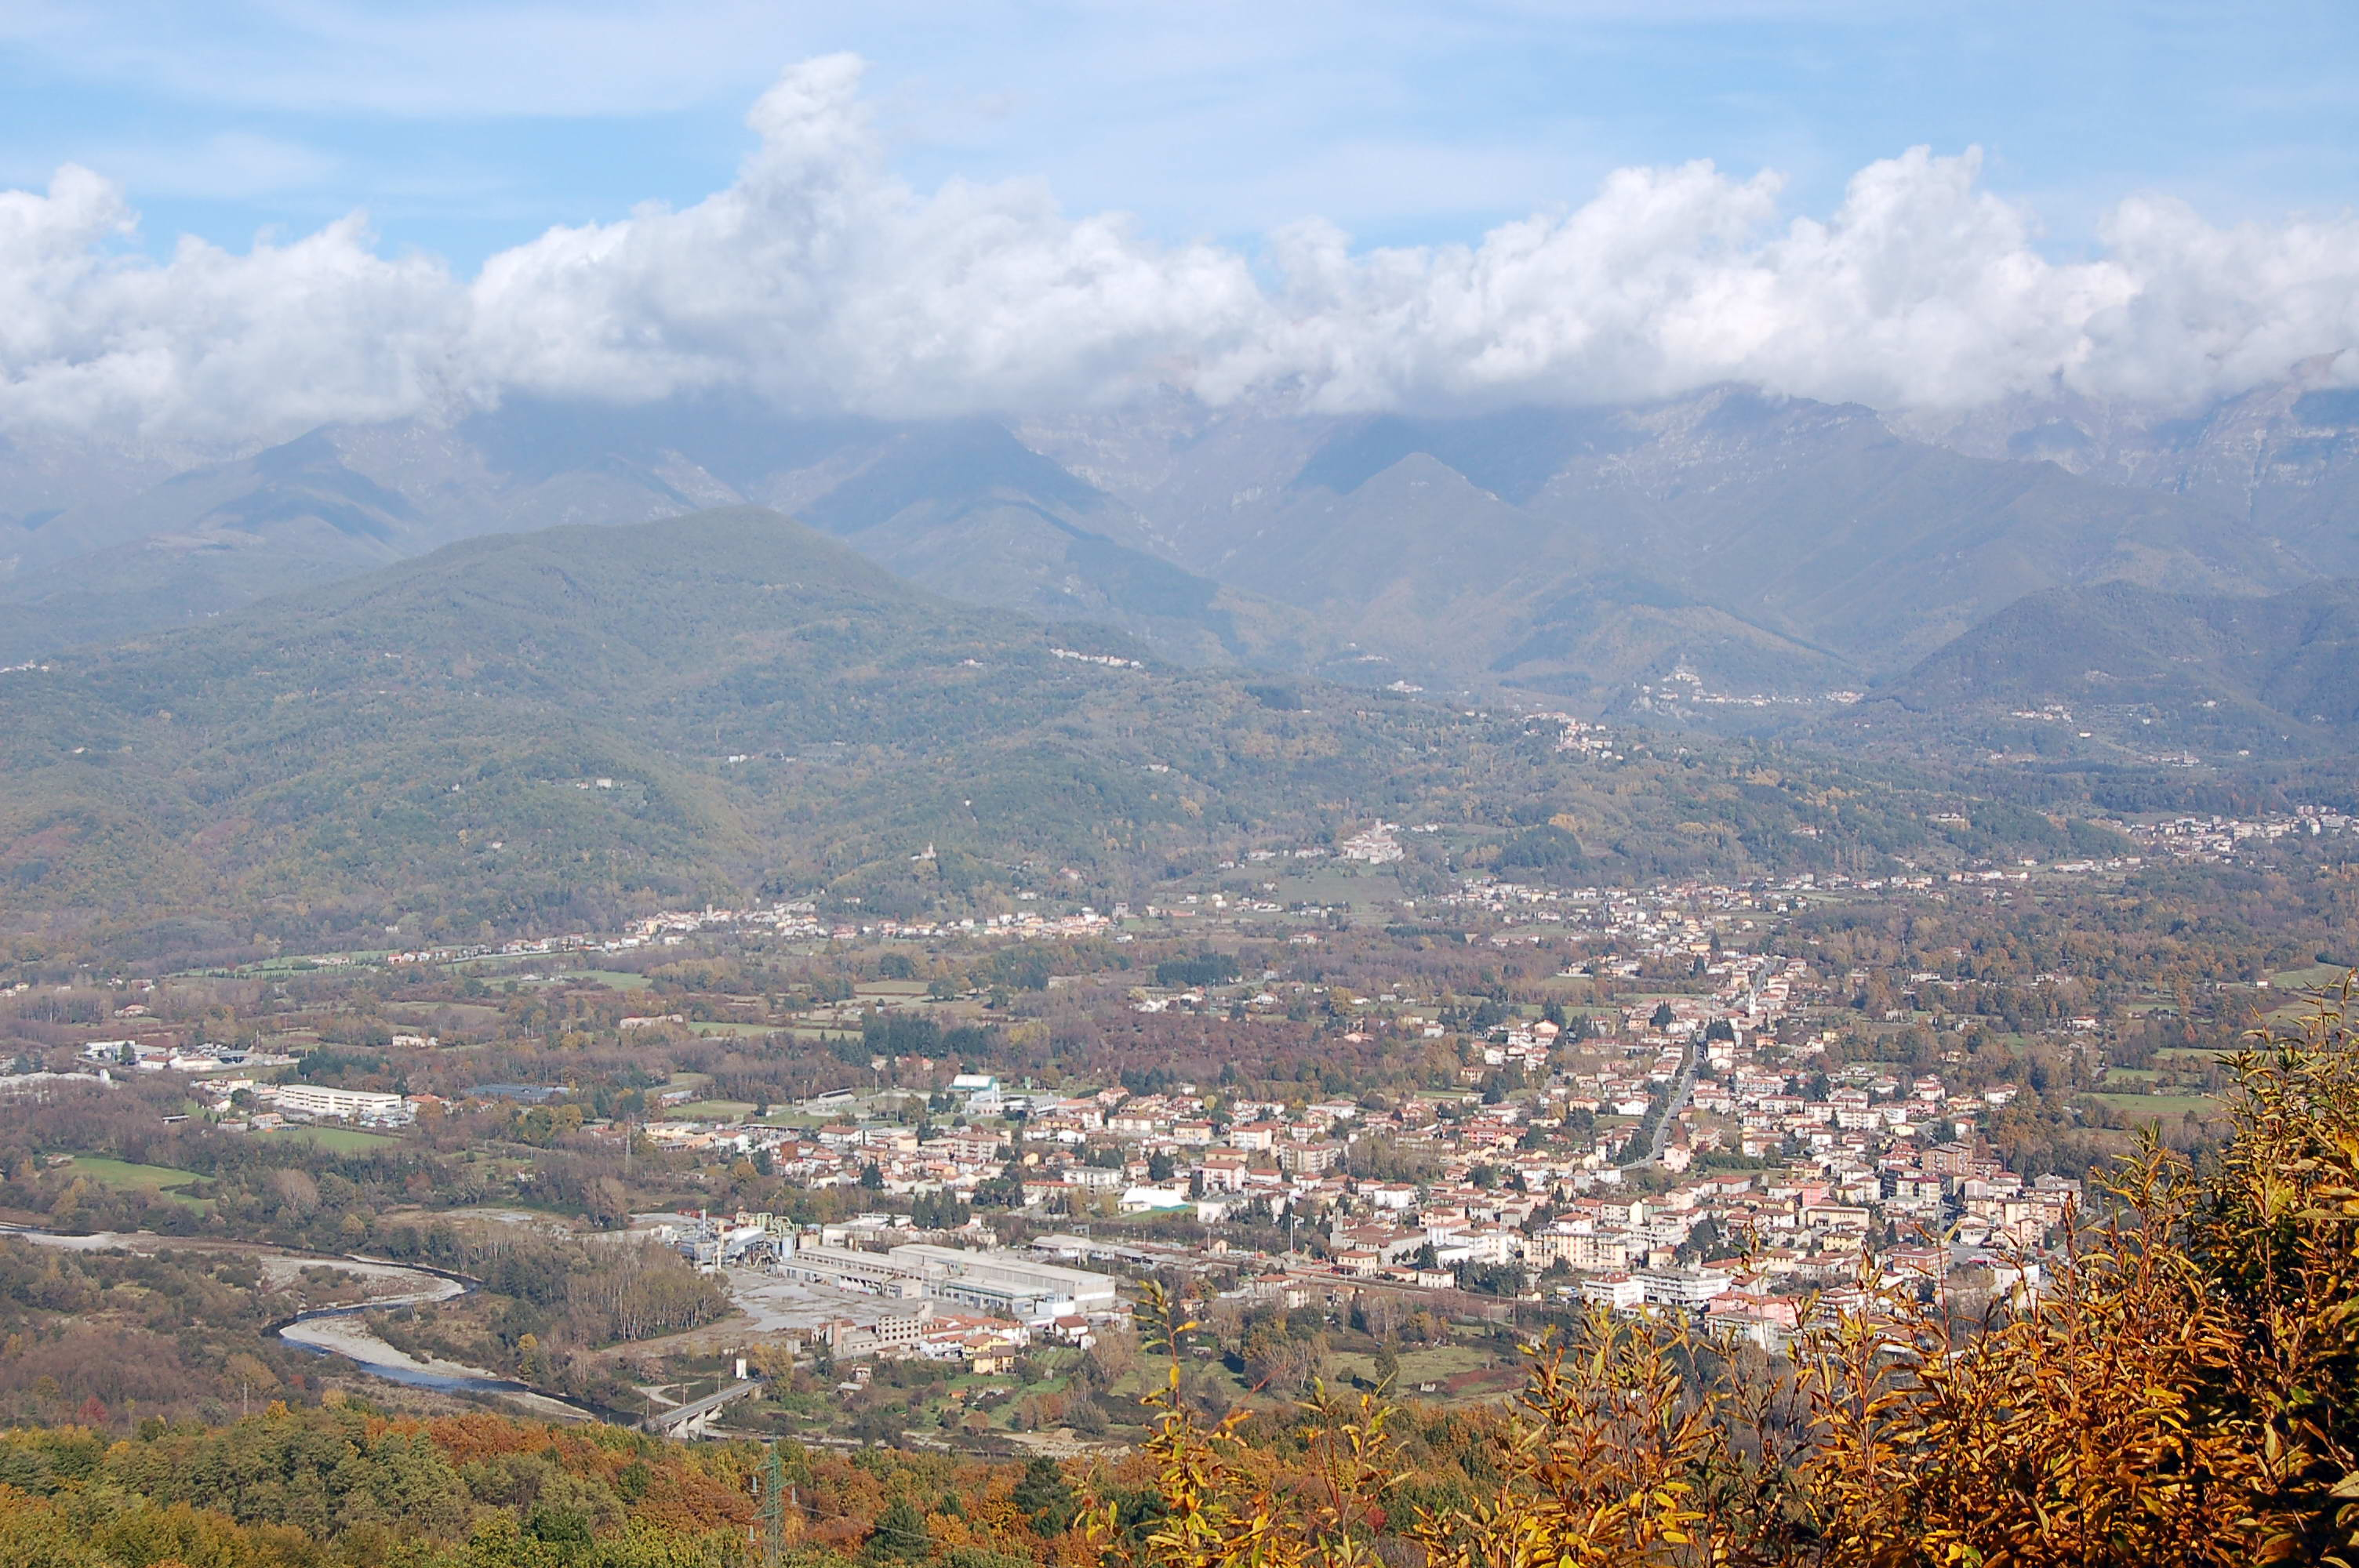 Villafranca in Lunigiana - The ups and downs of the Malaspina family